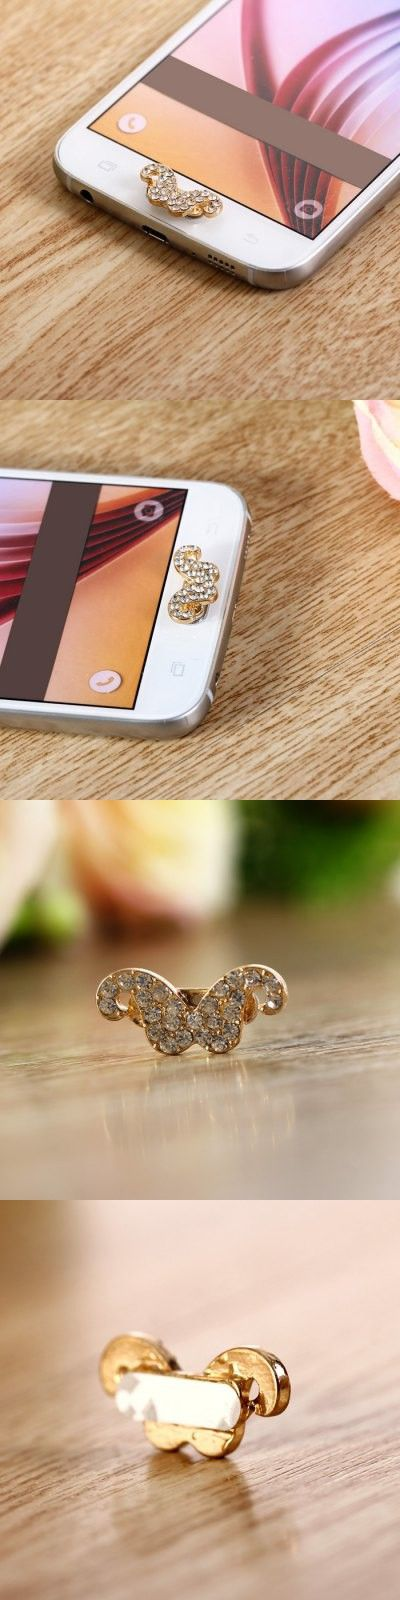 iPhone Charms   Beard Design Mobile Phone Button Sticker Key Cover Ornament for Samsung Note 5 S6 Edge Plus Note 4 3 S5 S4 etc.